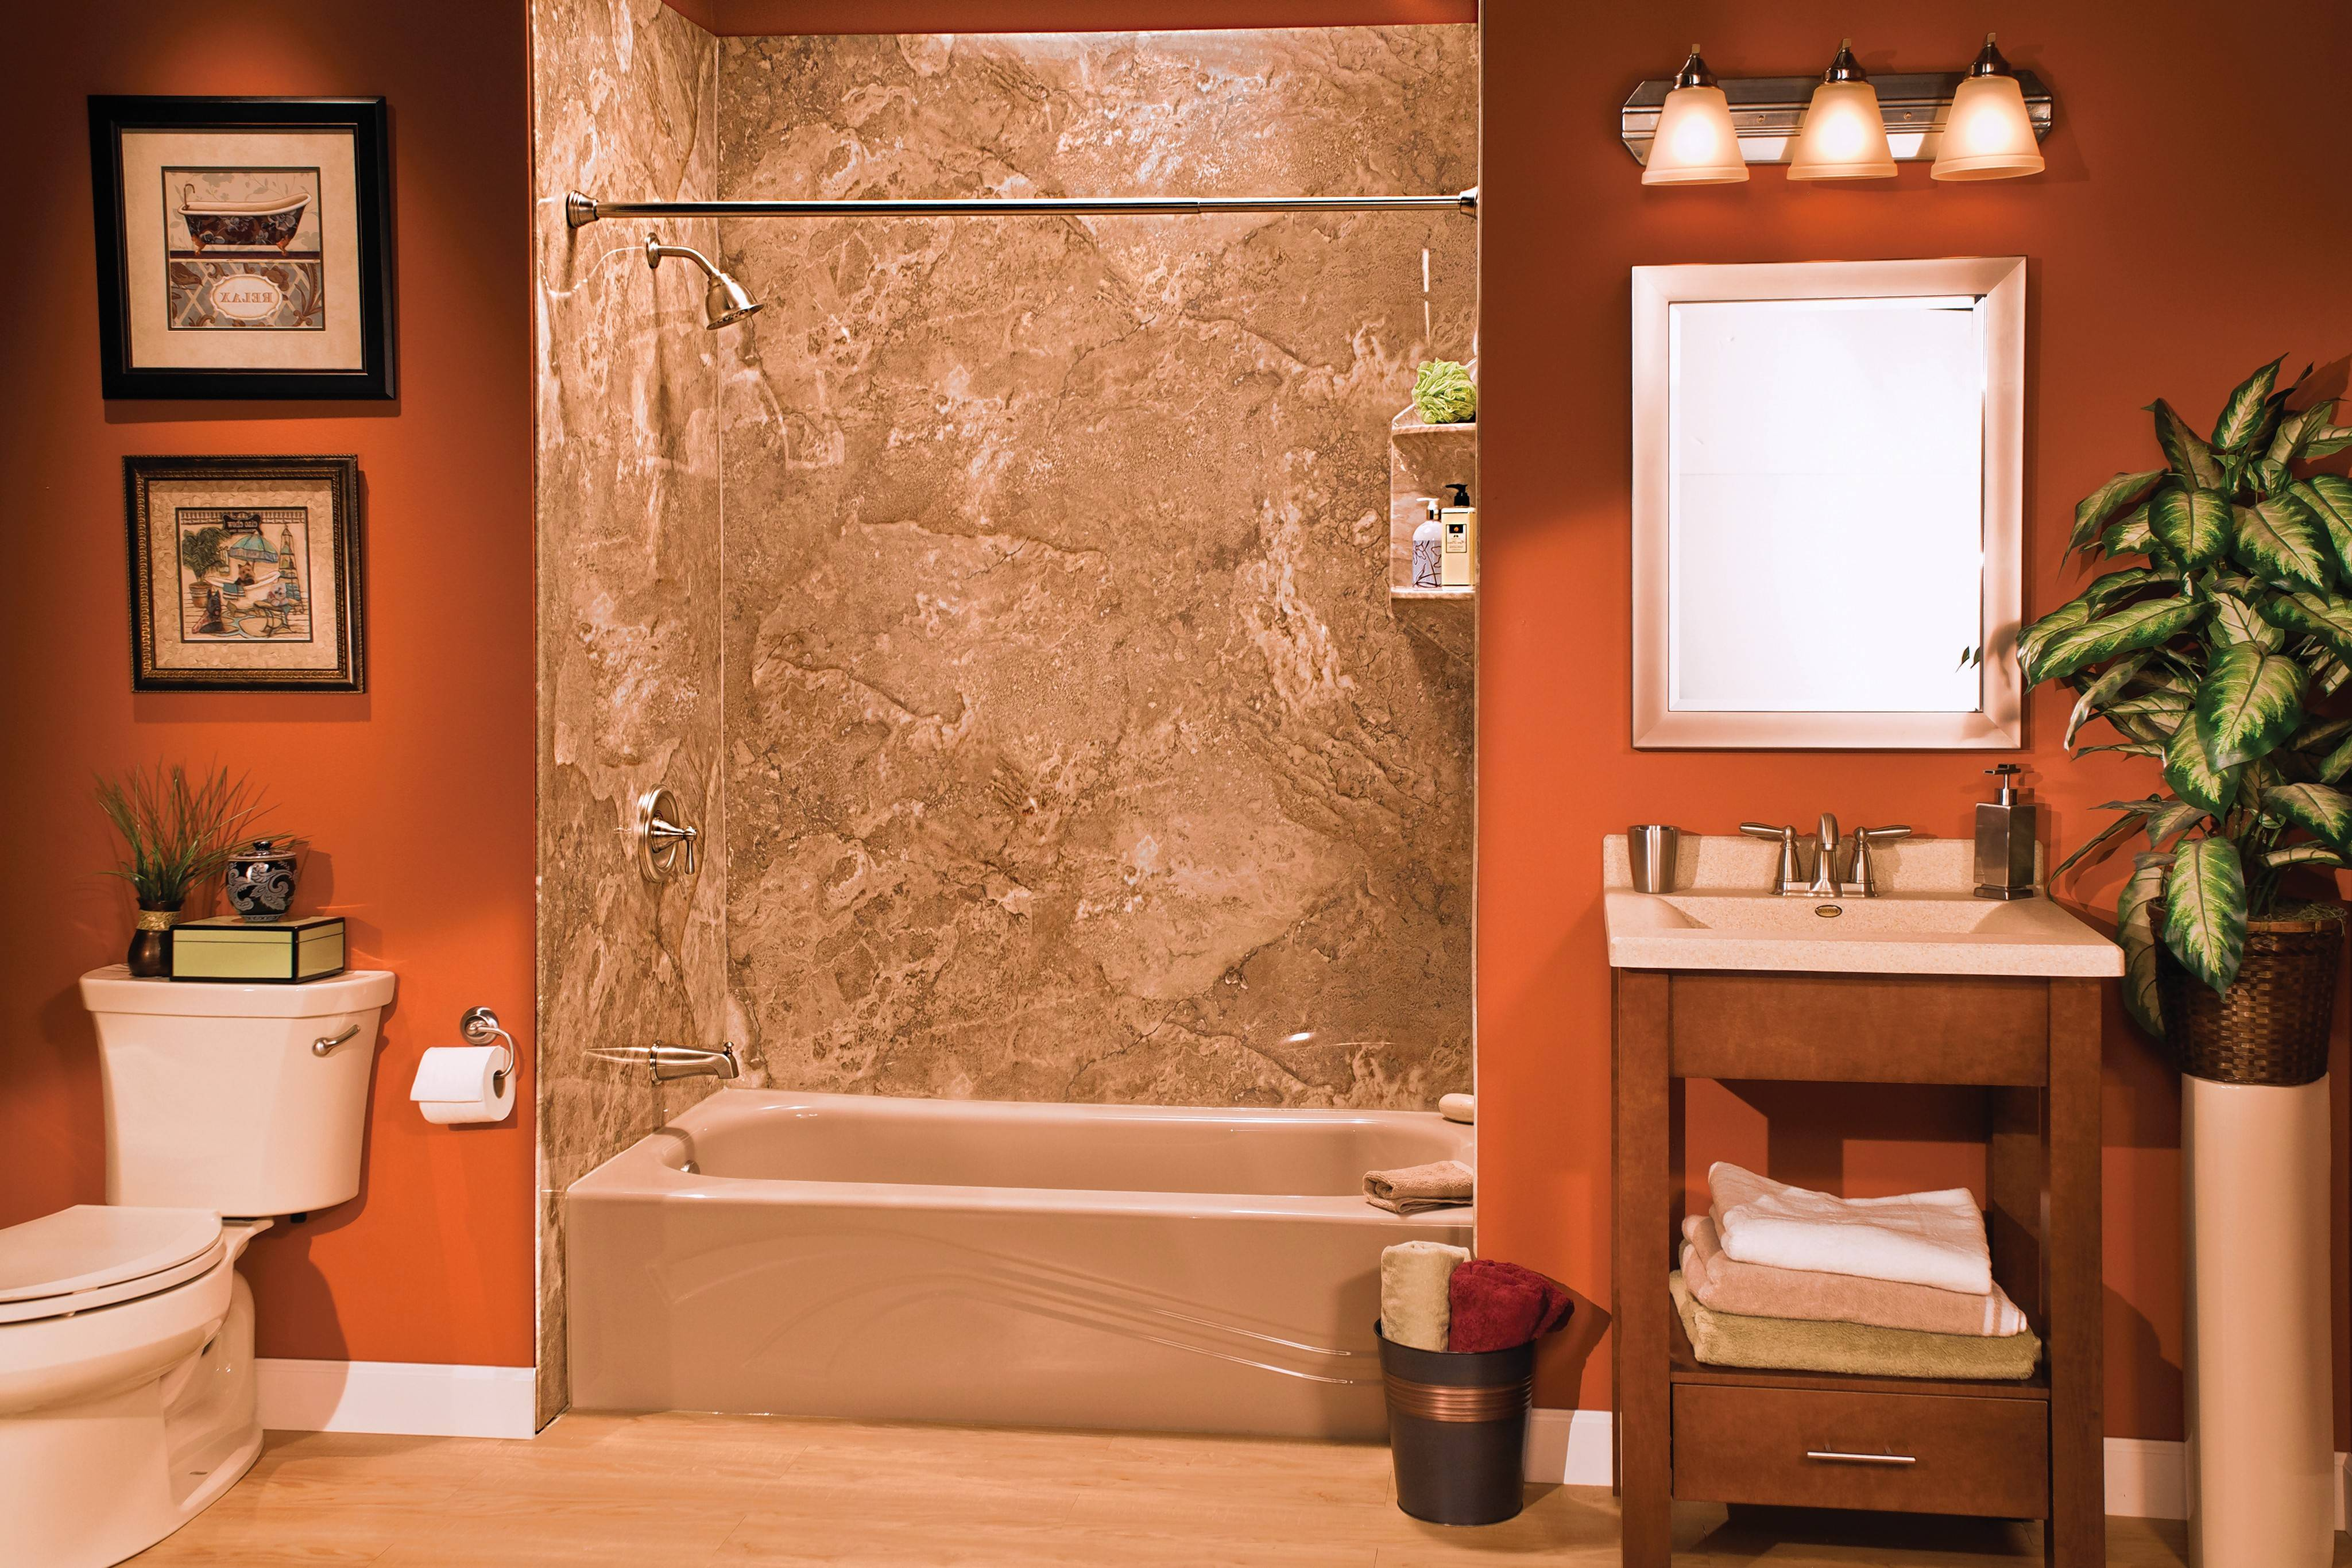 Bathroom Makeover Sweepstakes free makeover offered in bath planet sweepstakes